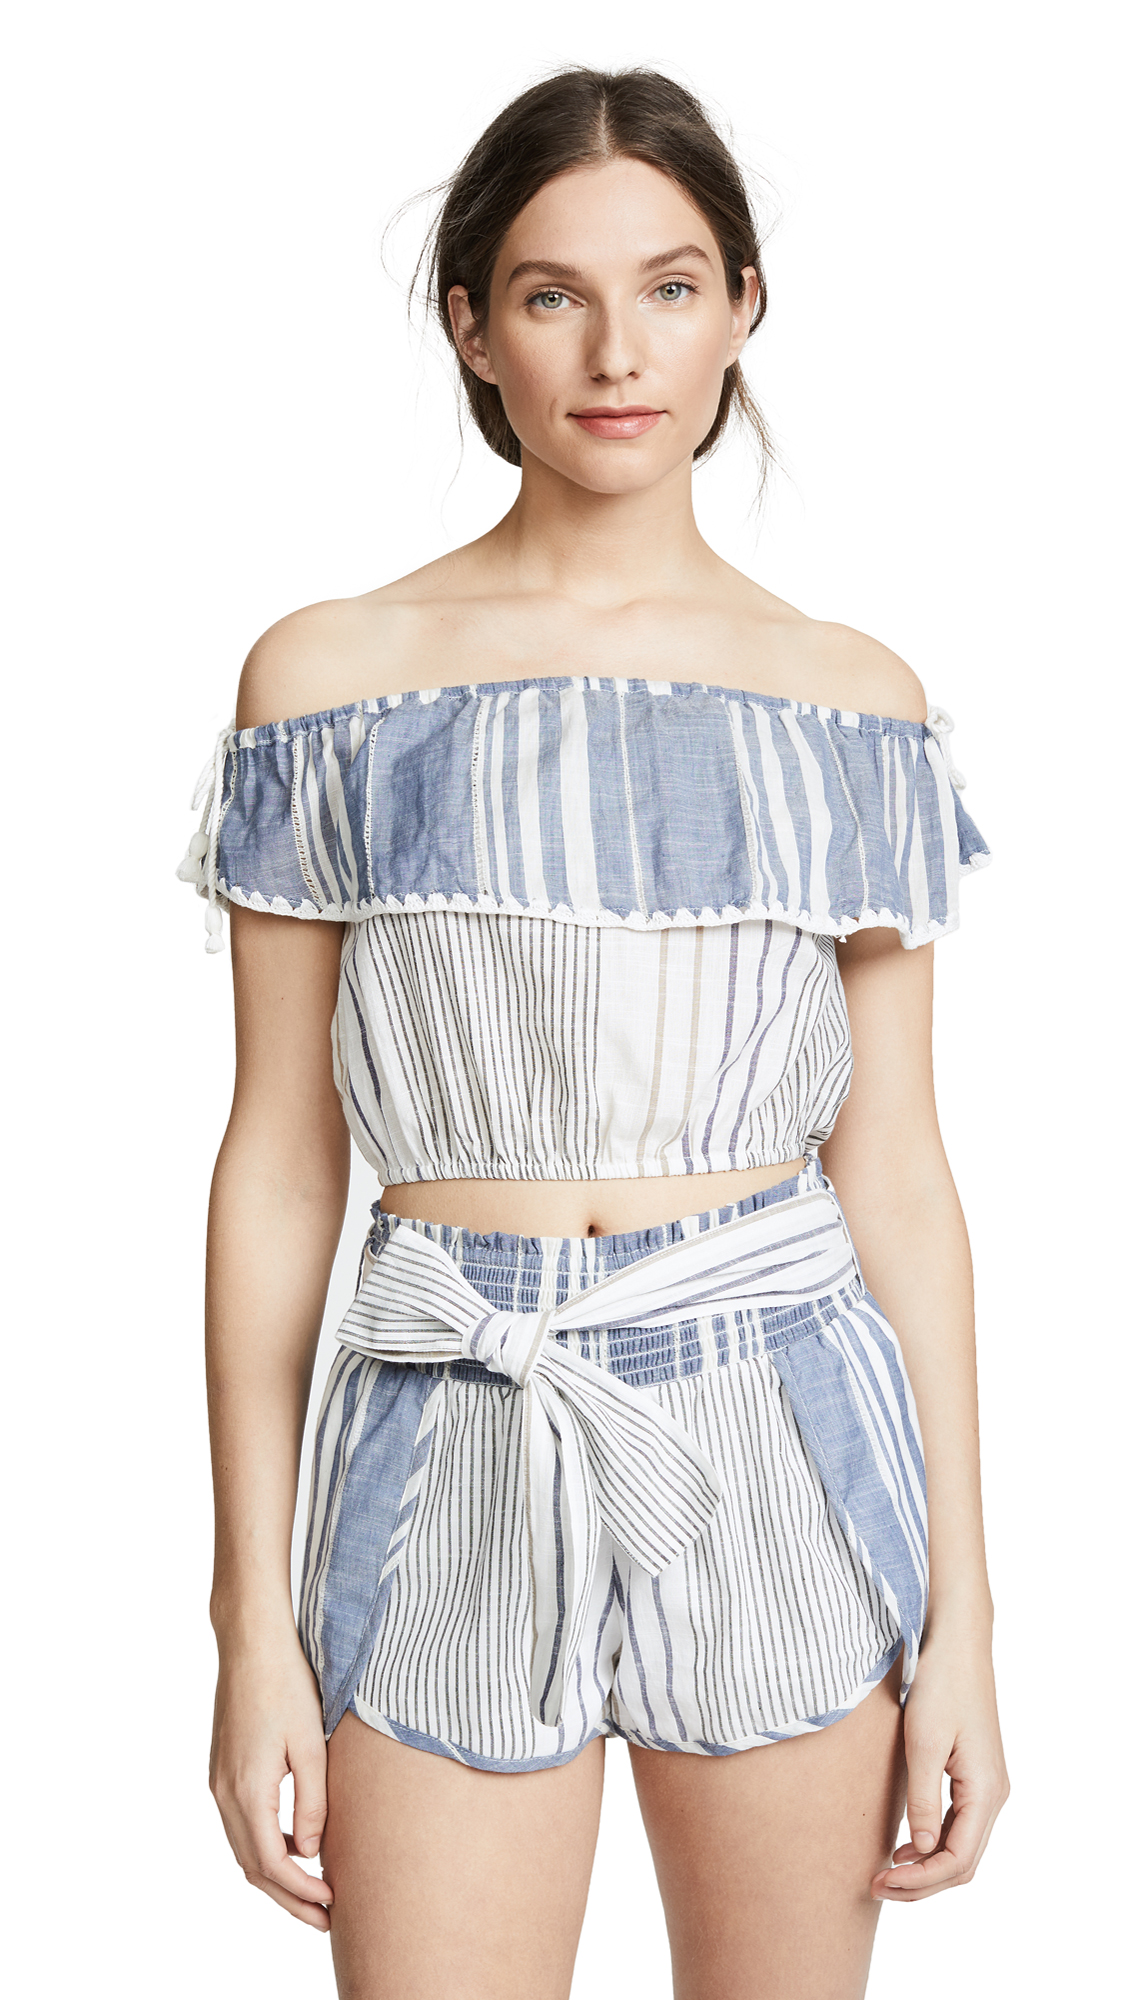 Saylor Thia Off the Shoulder Top & Shorts Set In Blue/White